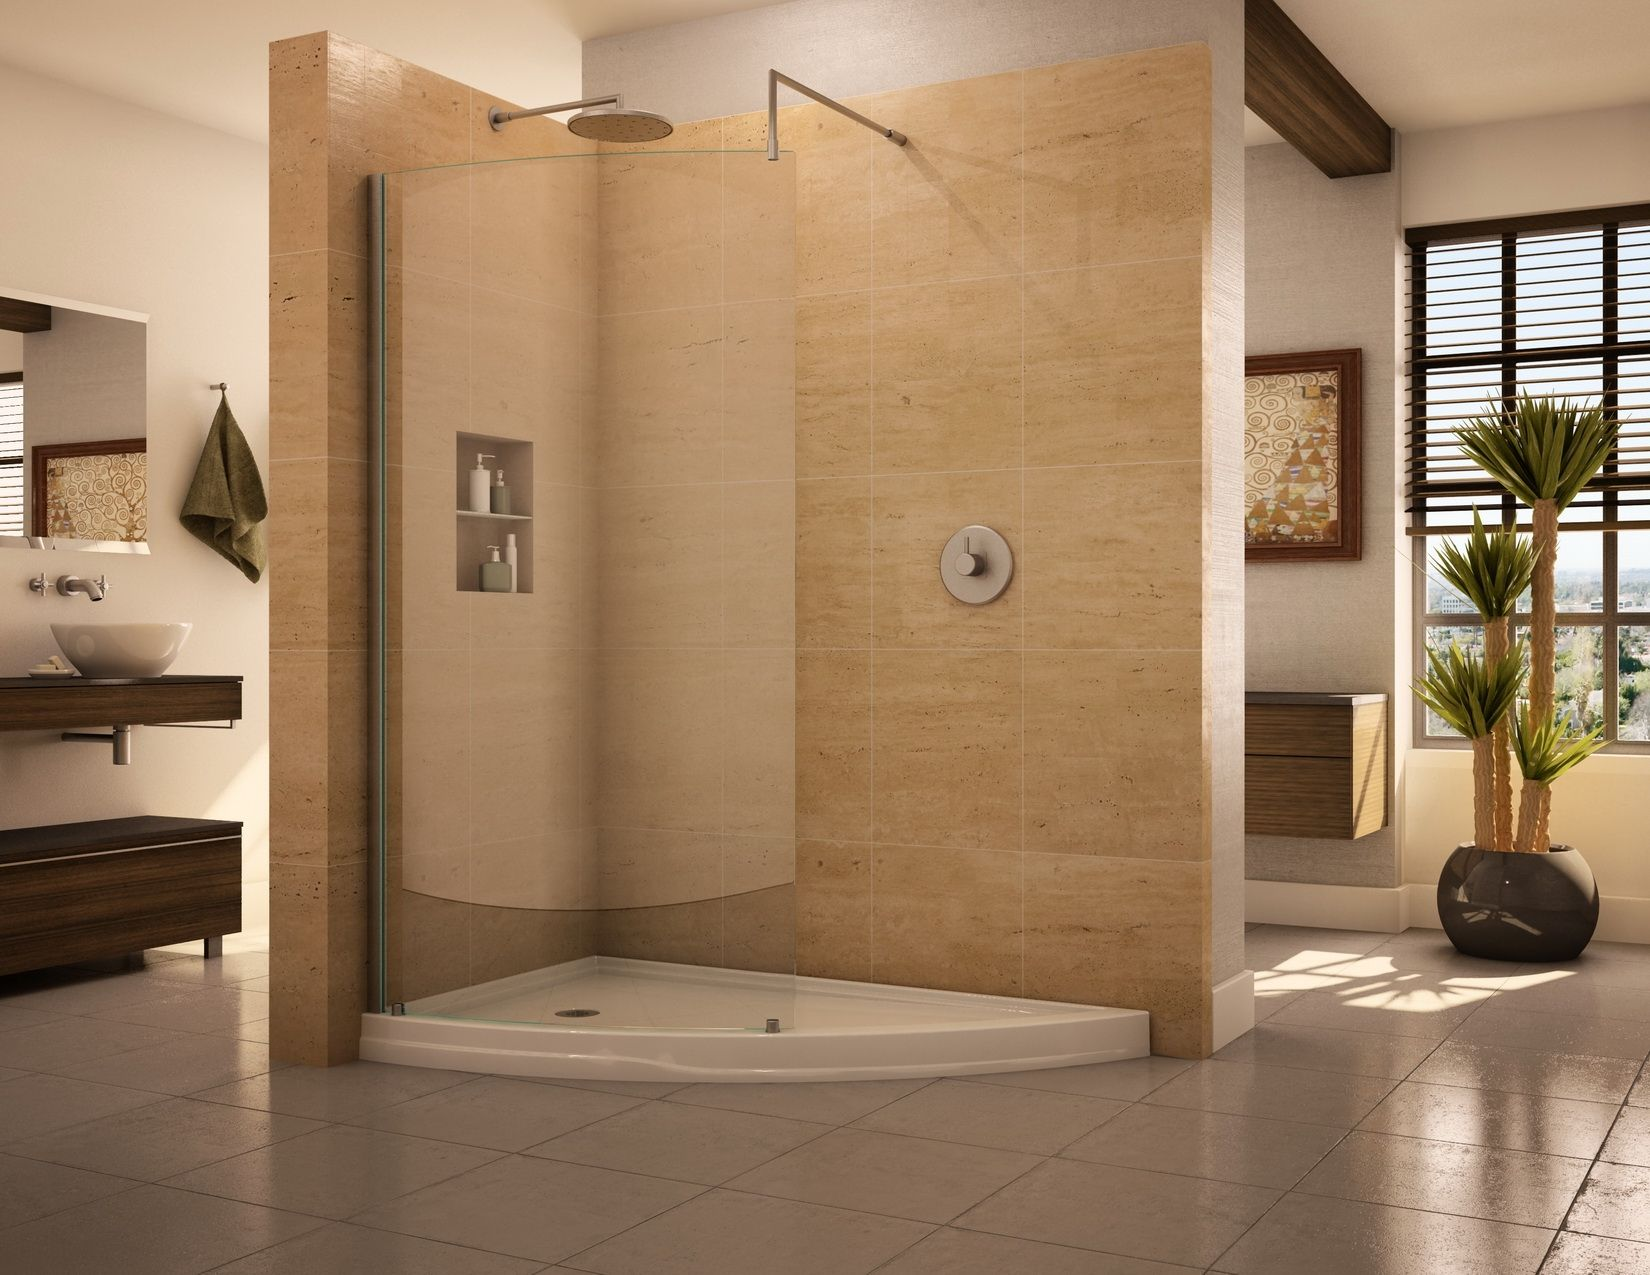 Doorless Shower Designs Teach You How To Go With The Flow | Open ...